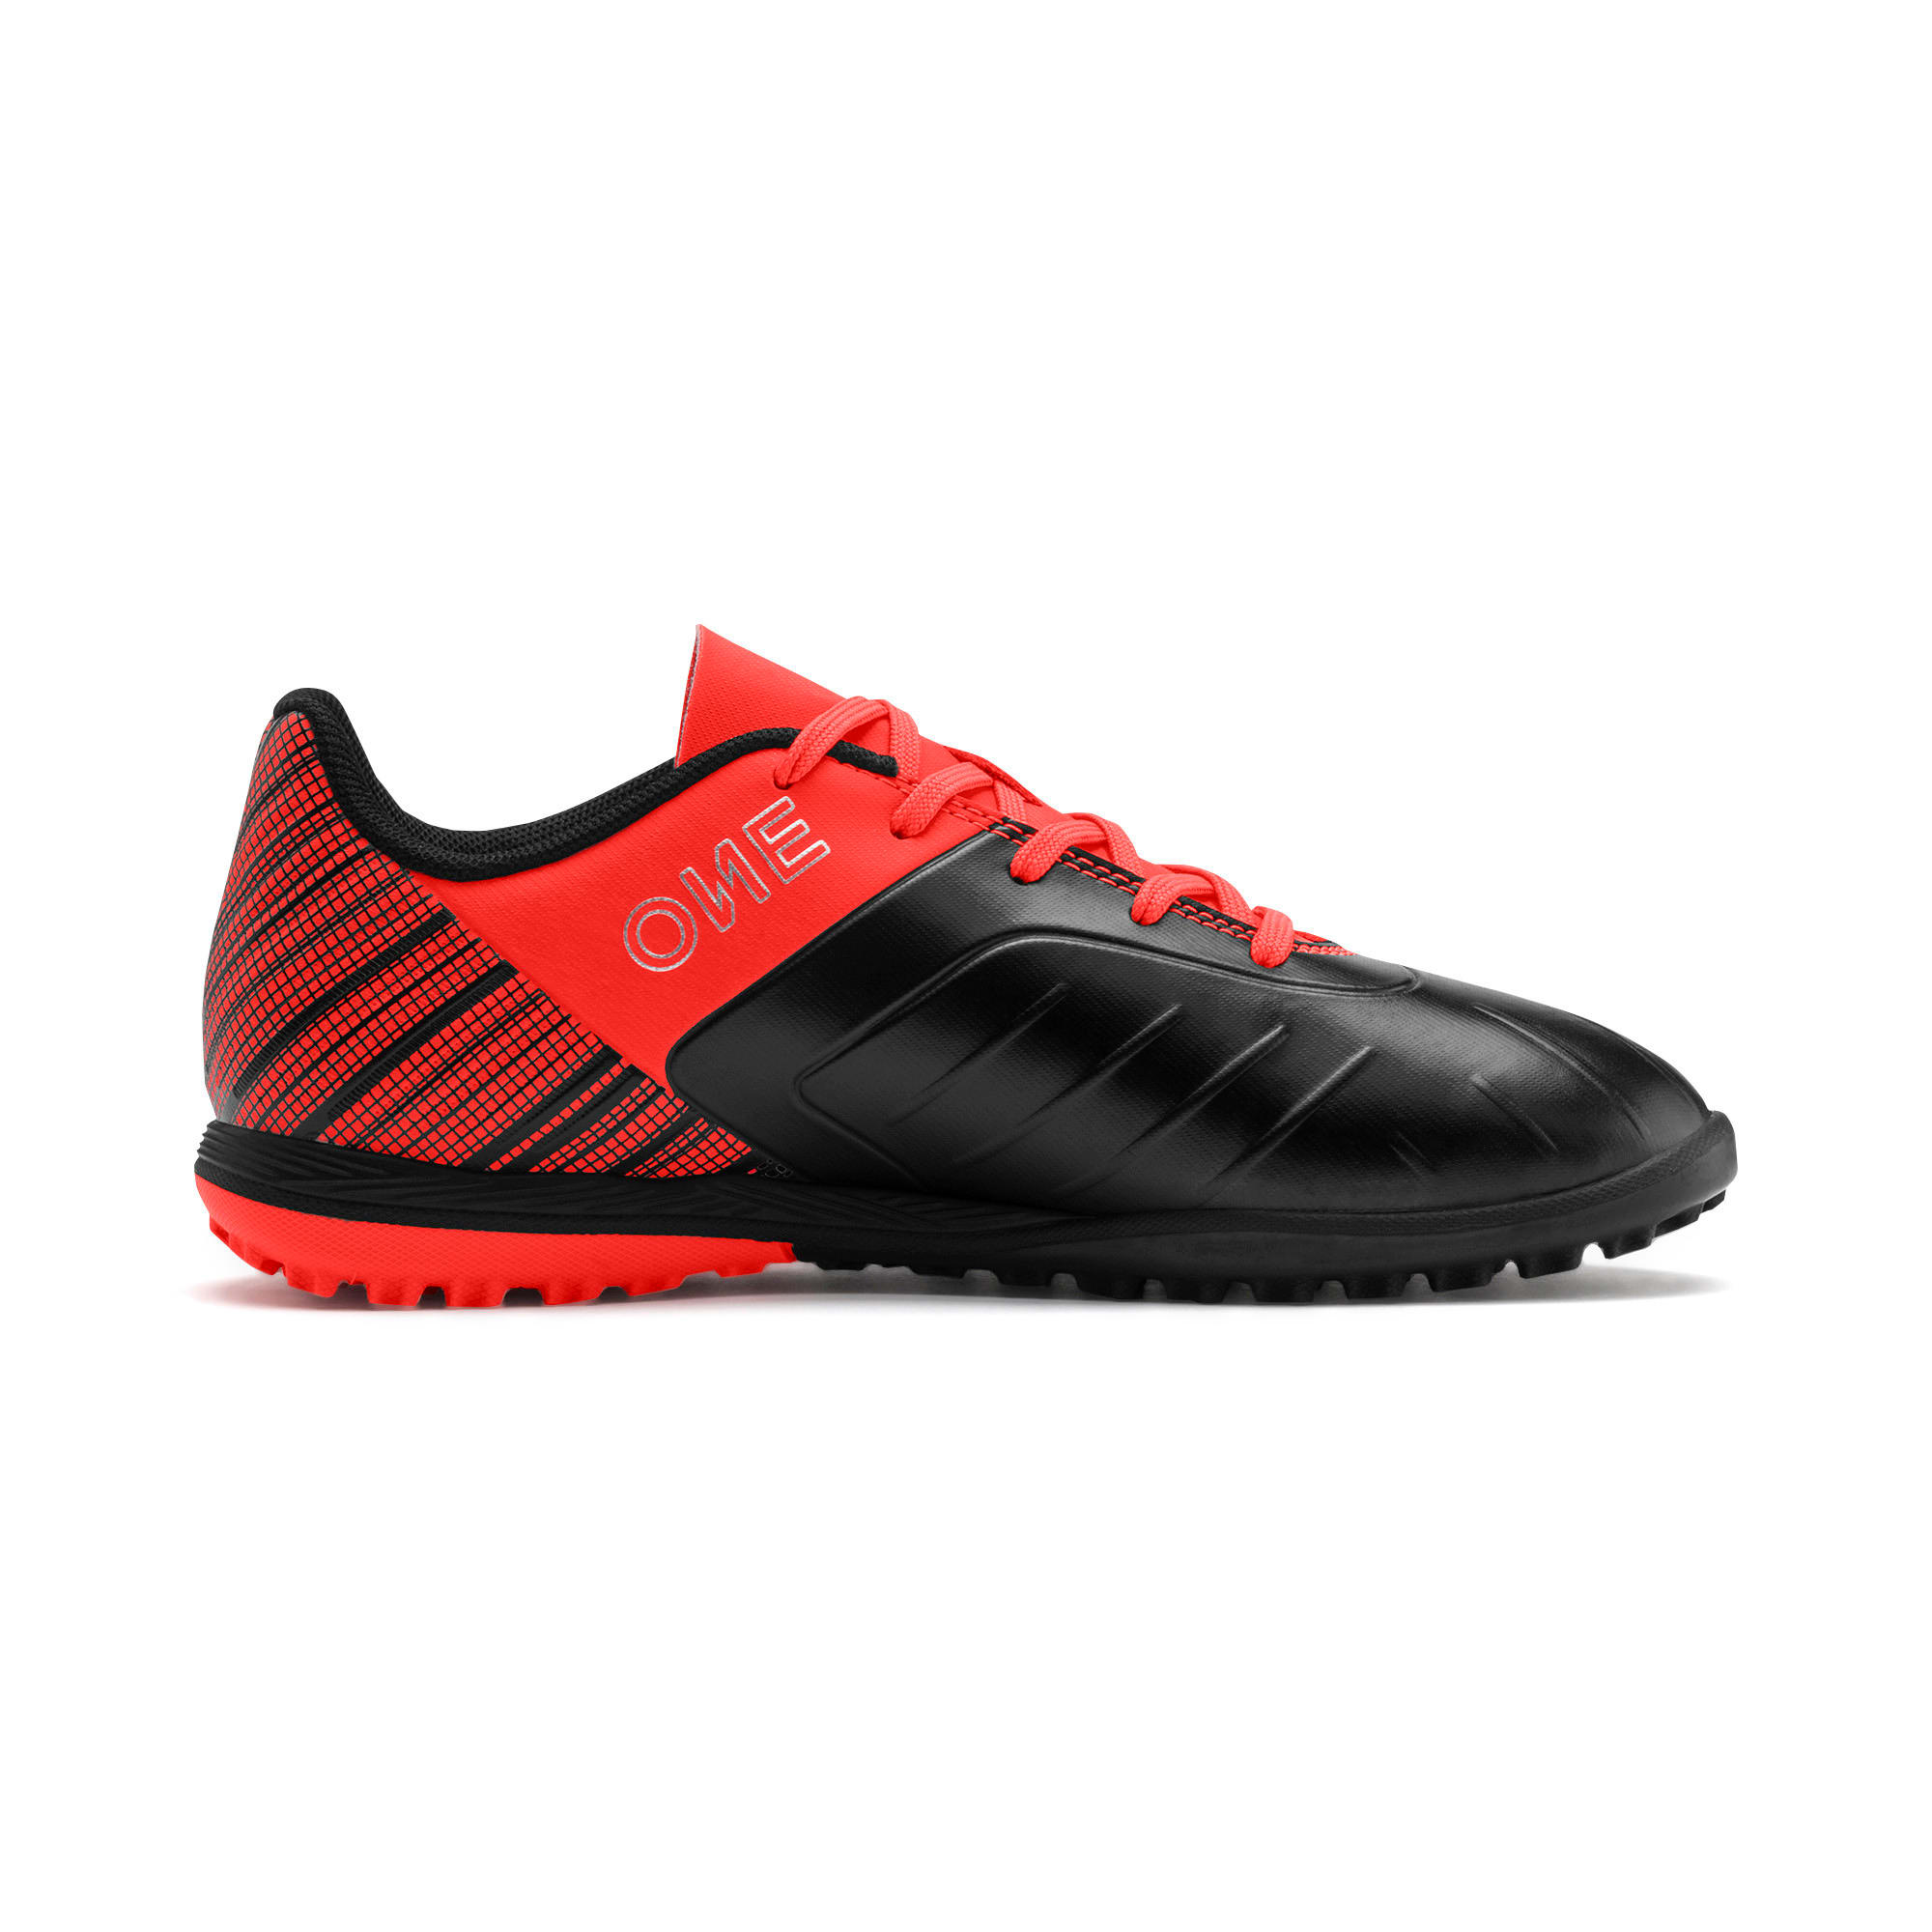 Thumbnail 5 of PUMA ONE 5.4 TT Soccer Shoes JR, Black-Nrgy Red-Aged Silver, medium